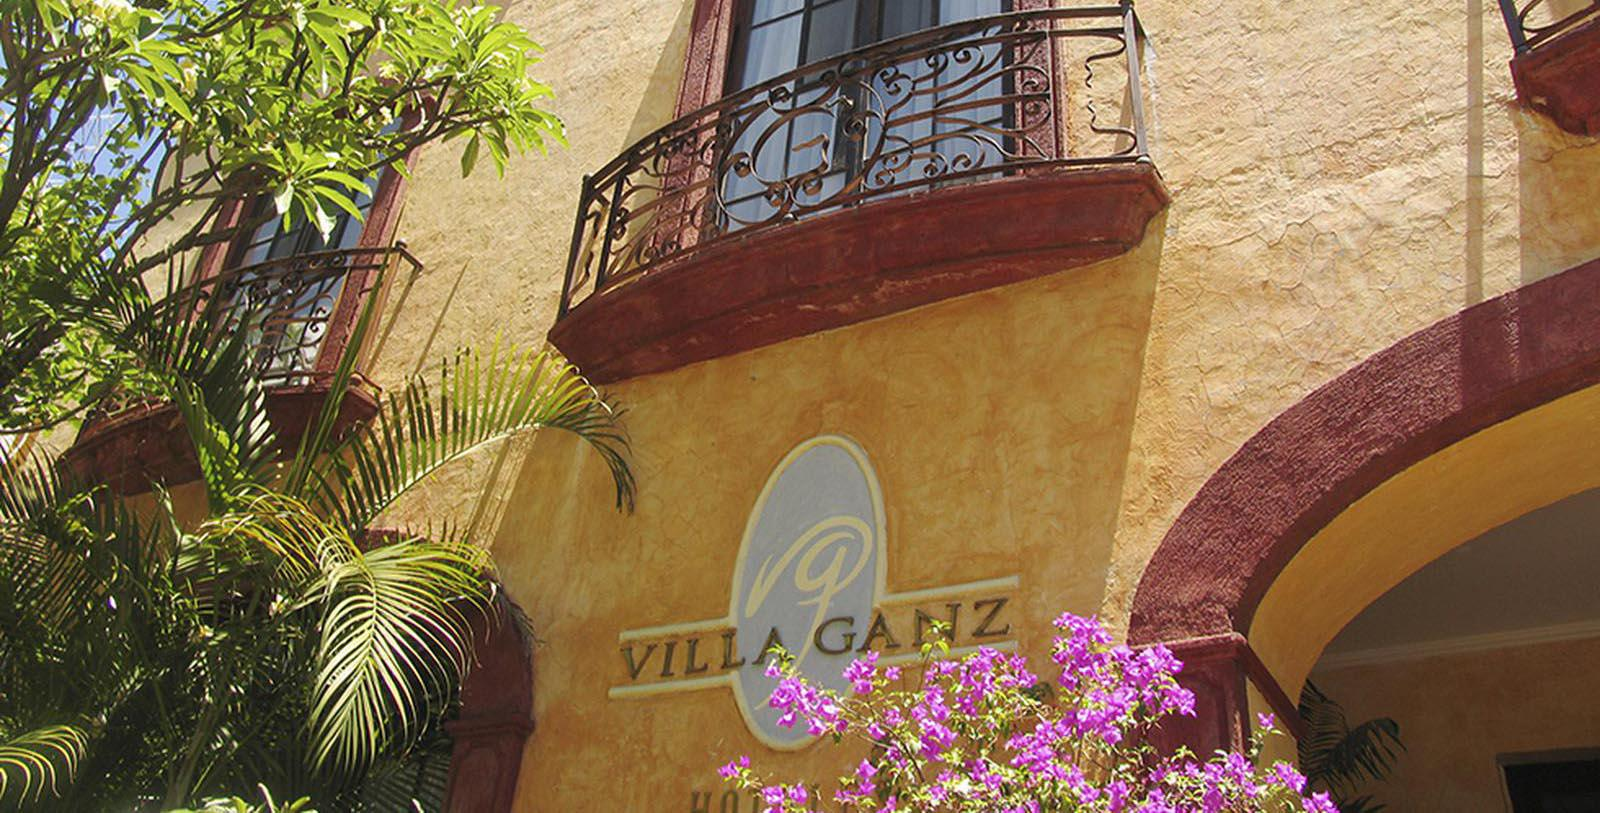 Image of Hotel Sign at Villa Ganz Boutique Hotel, 1930, Member of Historic Hotels Worldwide, in Guadalajara, Jalisco, Mexico, Special Offers, Discounted Rates, Families, Romantic Escape, Honeymoons, Anniversaries, Reunions